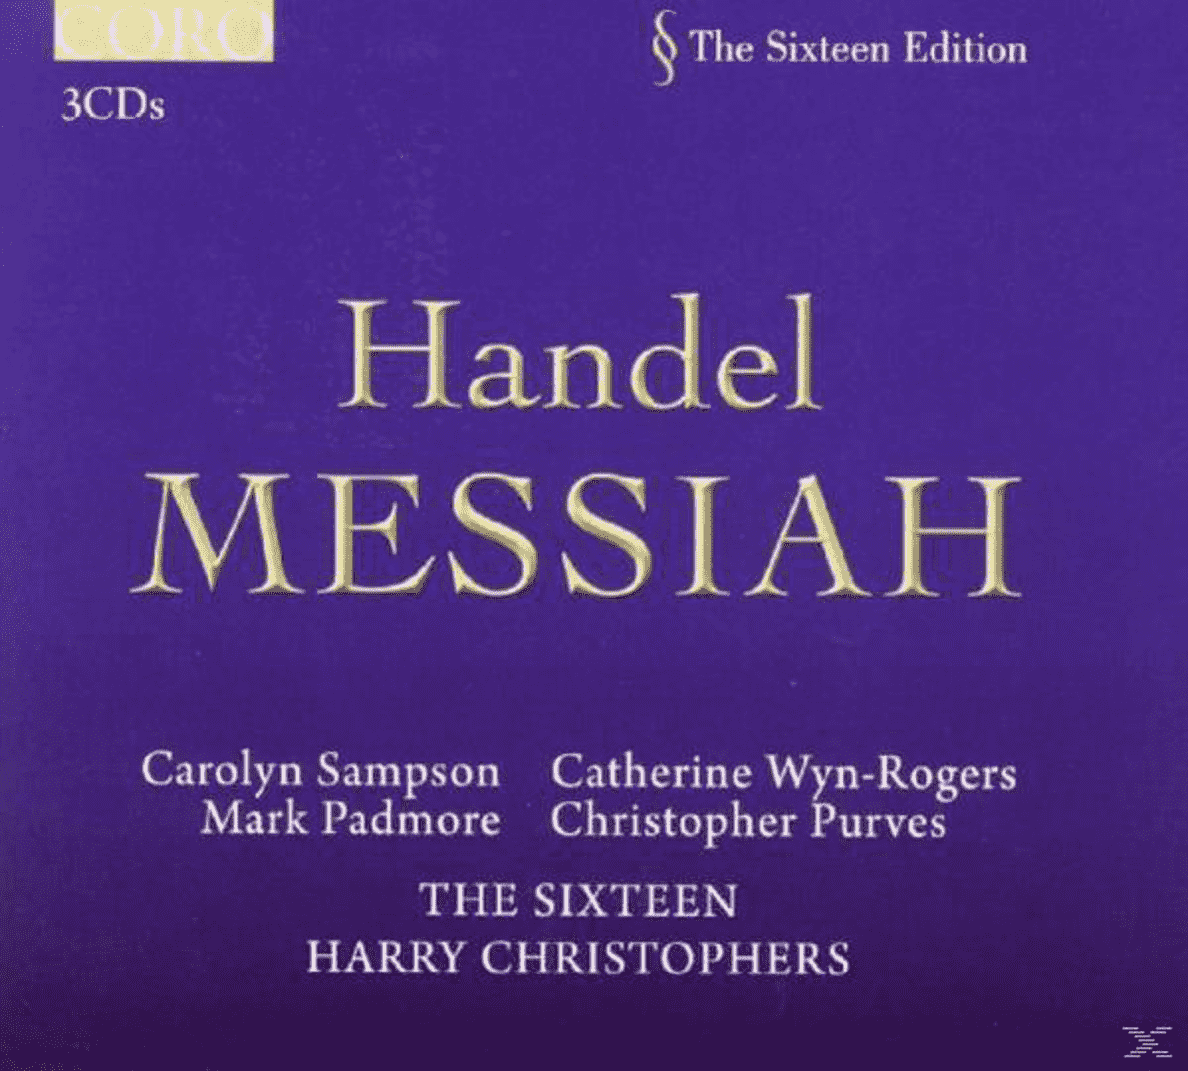 Carolyn Sampson, Mark Padmore, Christopher Purves, Catherine Wyn-rogers, The Sixteen - Handel Messiah - (CD)